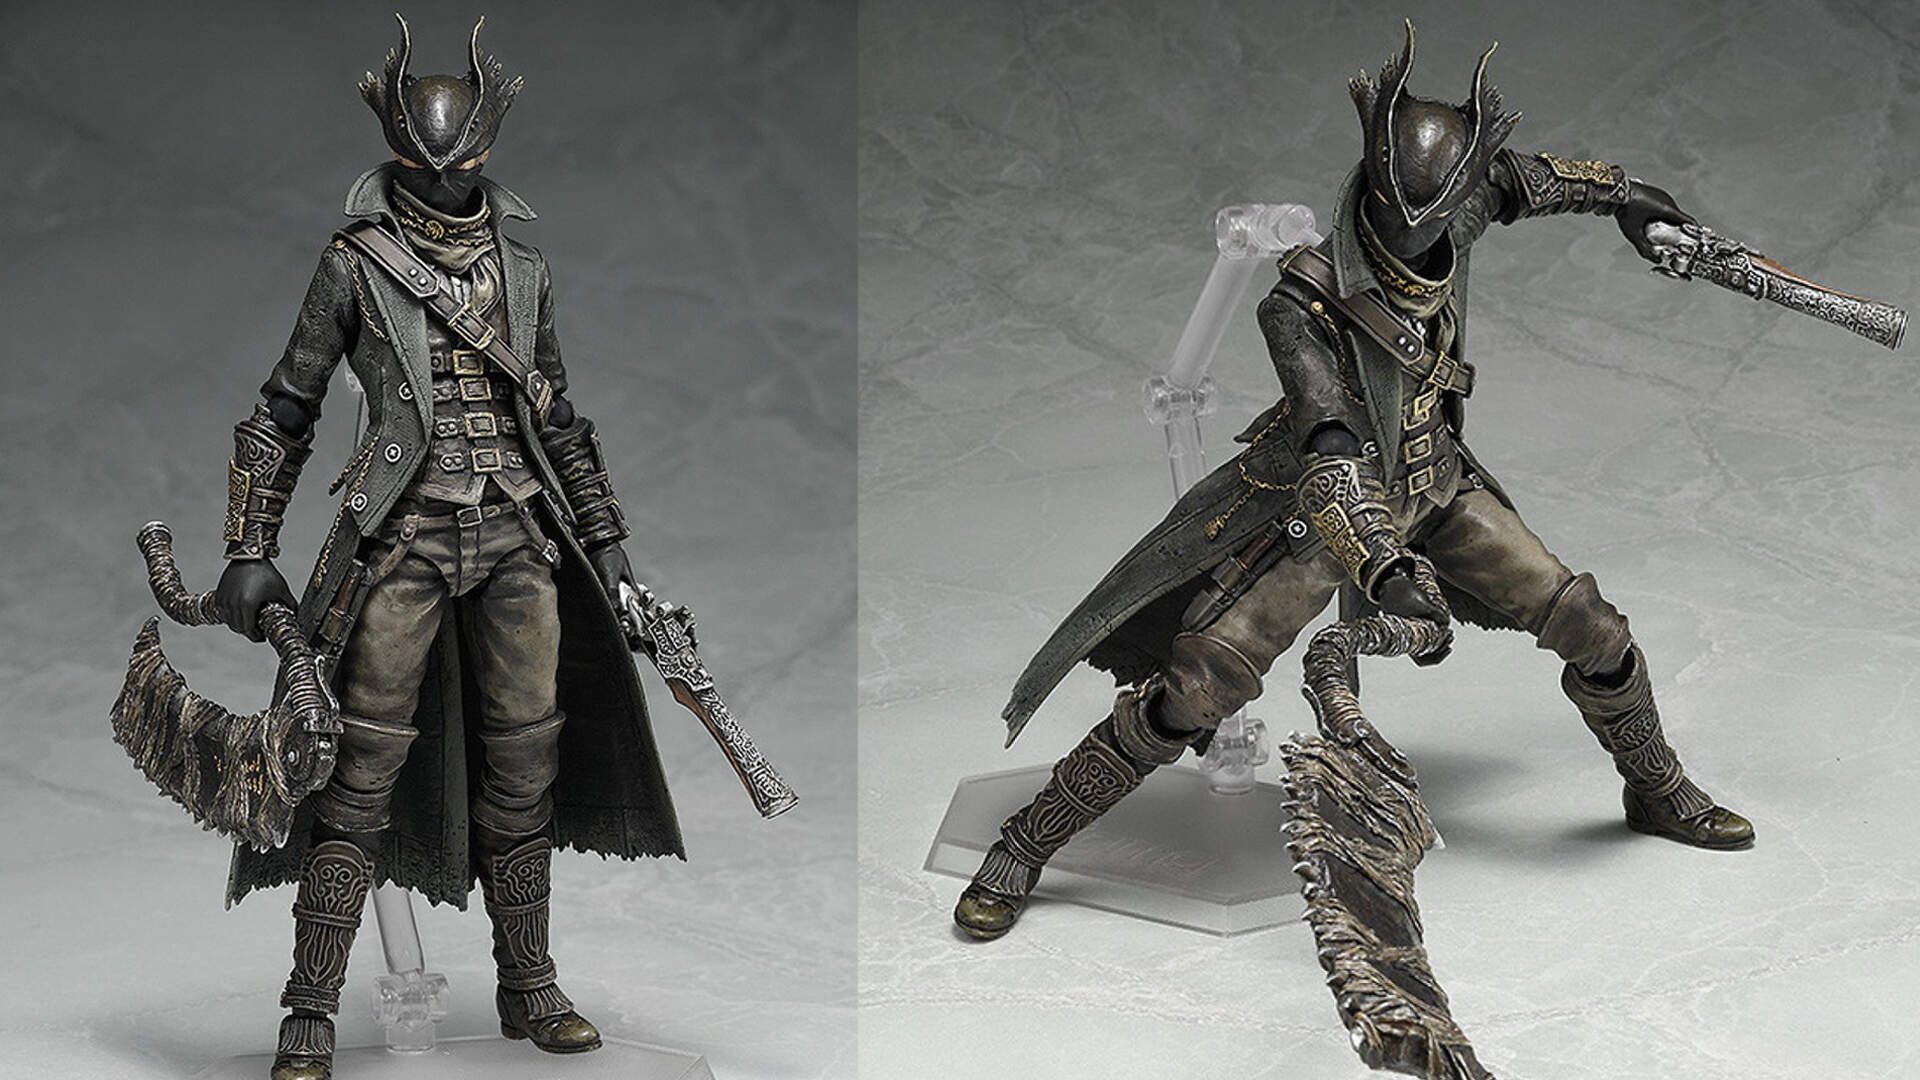 Limited Edition Hunter from Bloodborne Figma Figurine up for Pre-Order